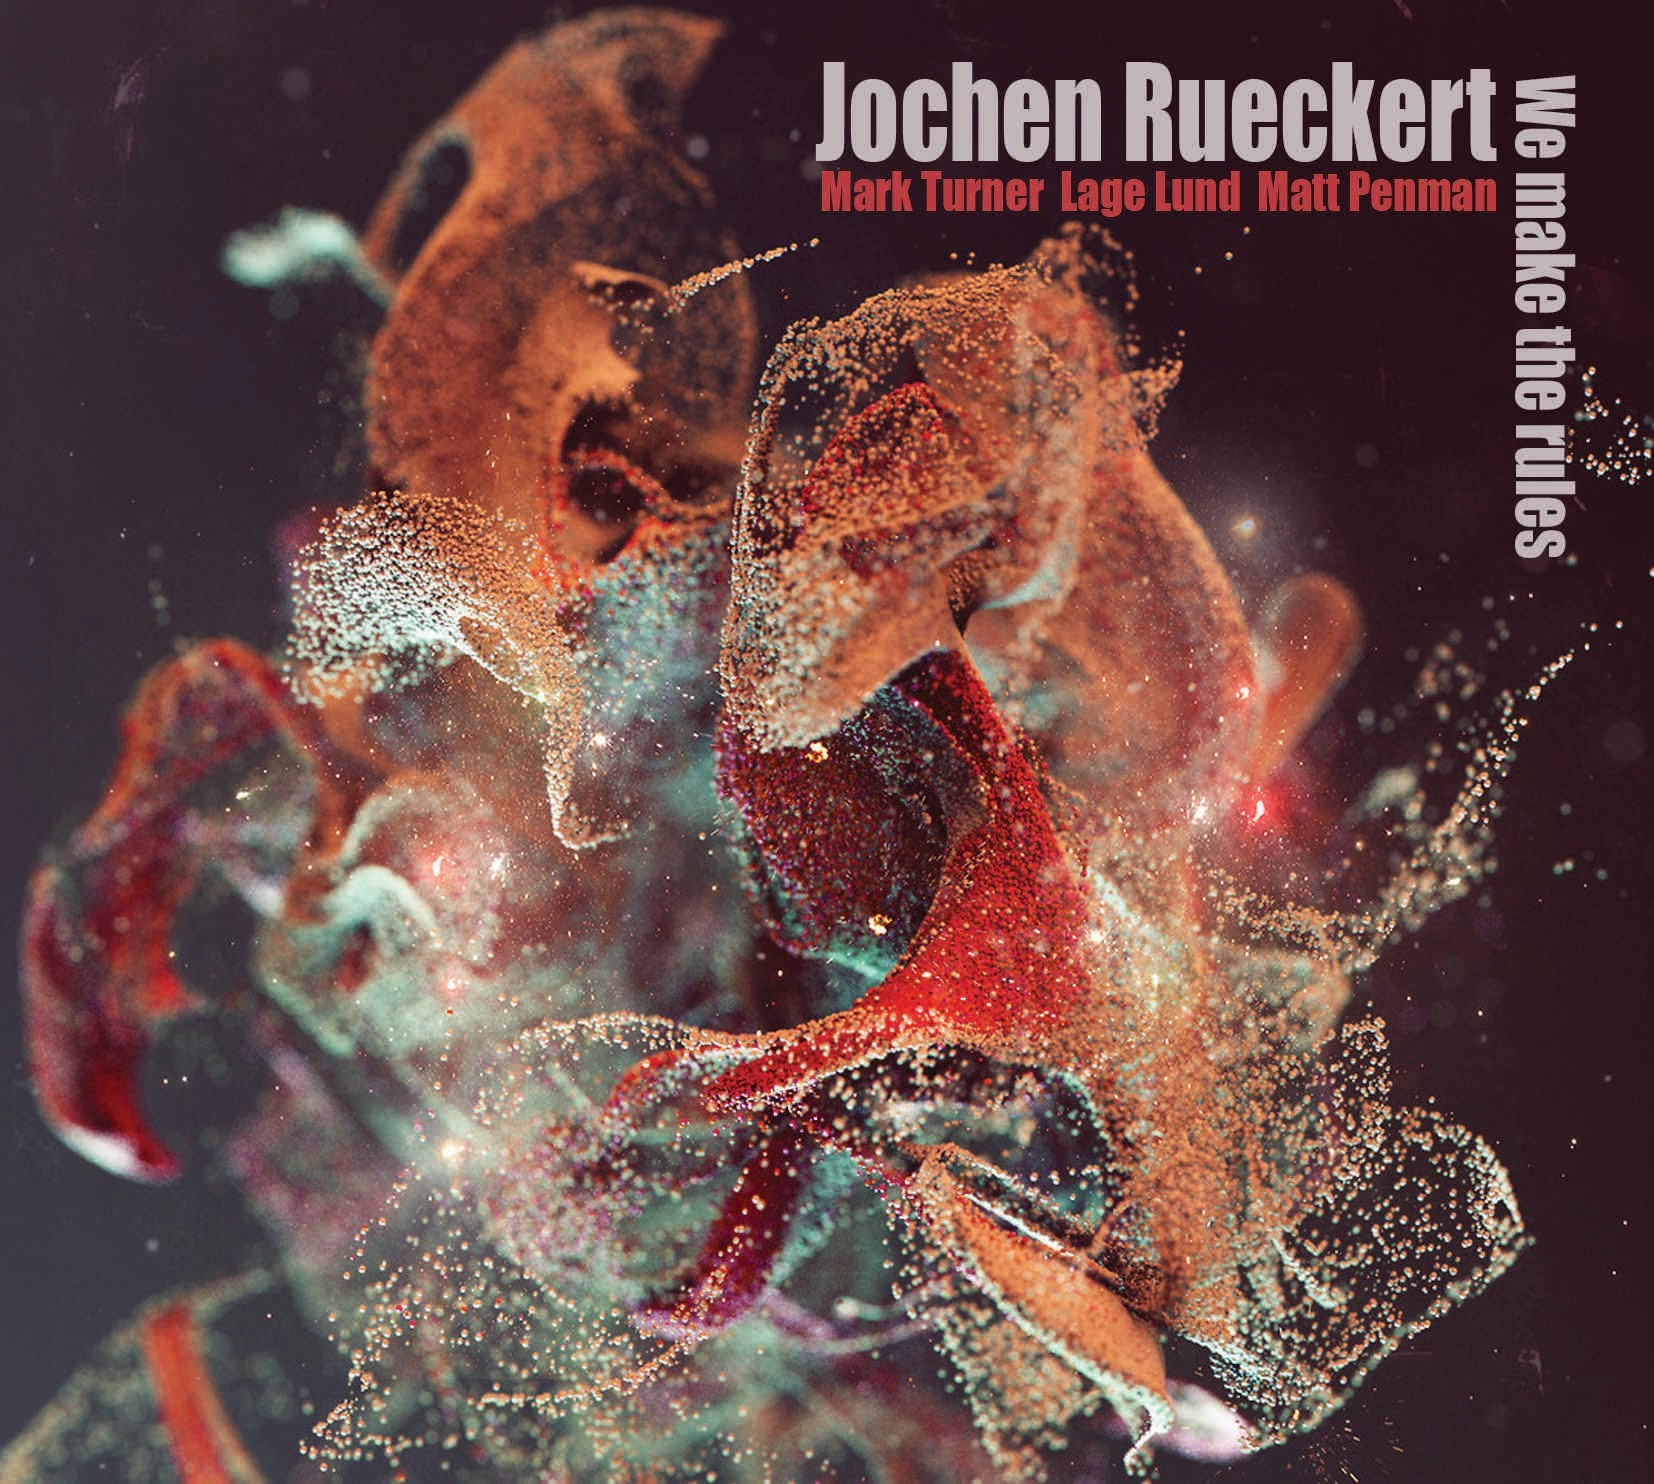 Jochen Rückert, Mainstream Jazz